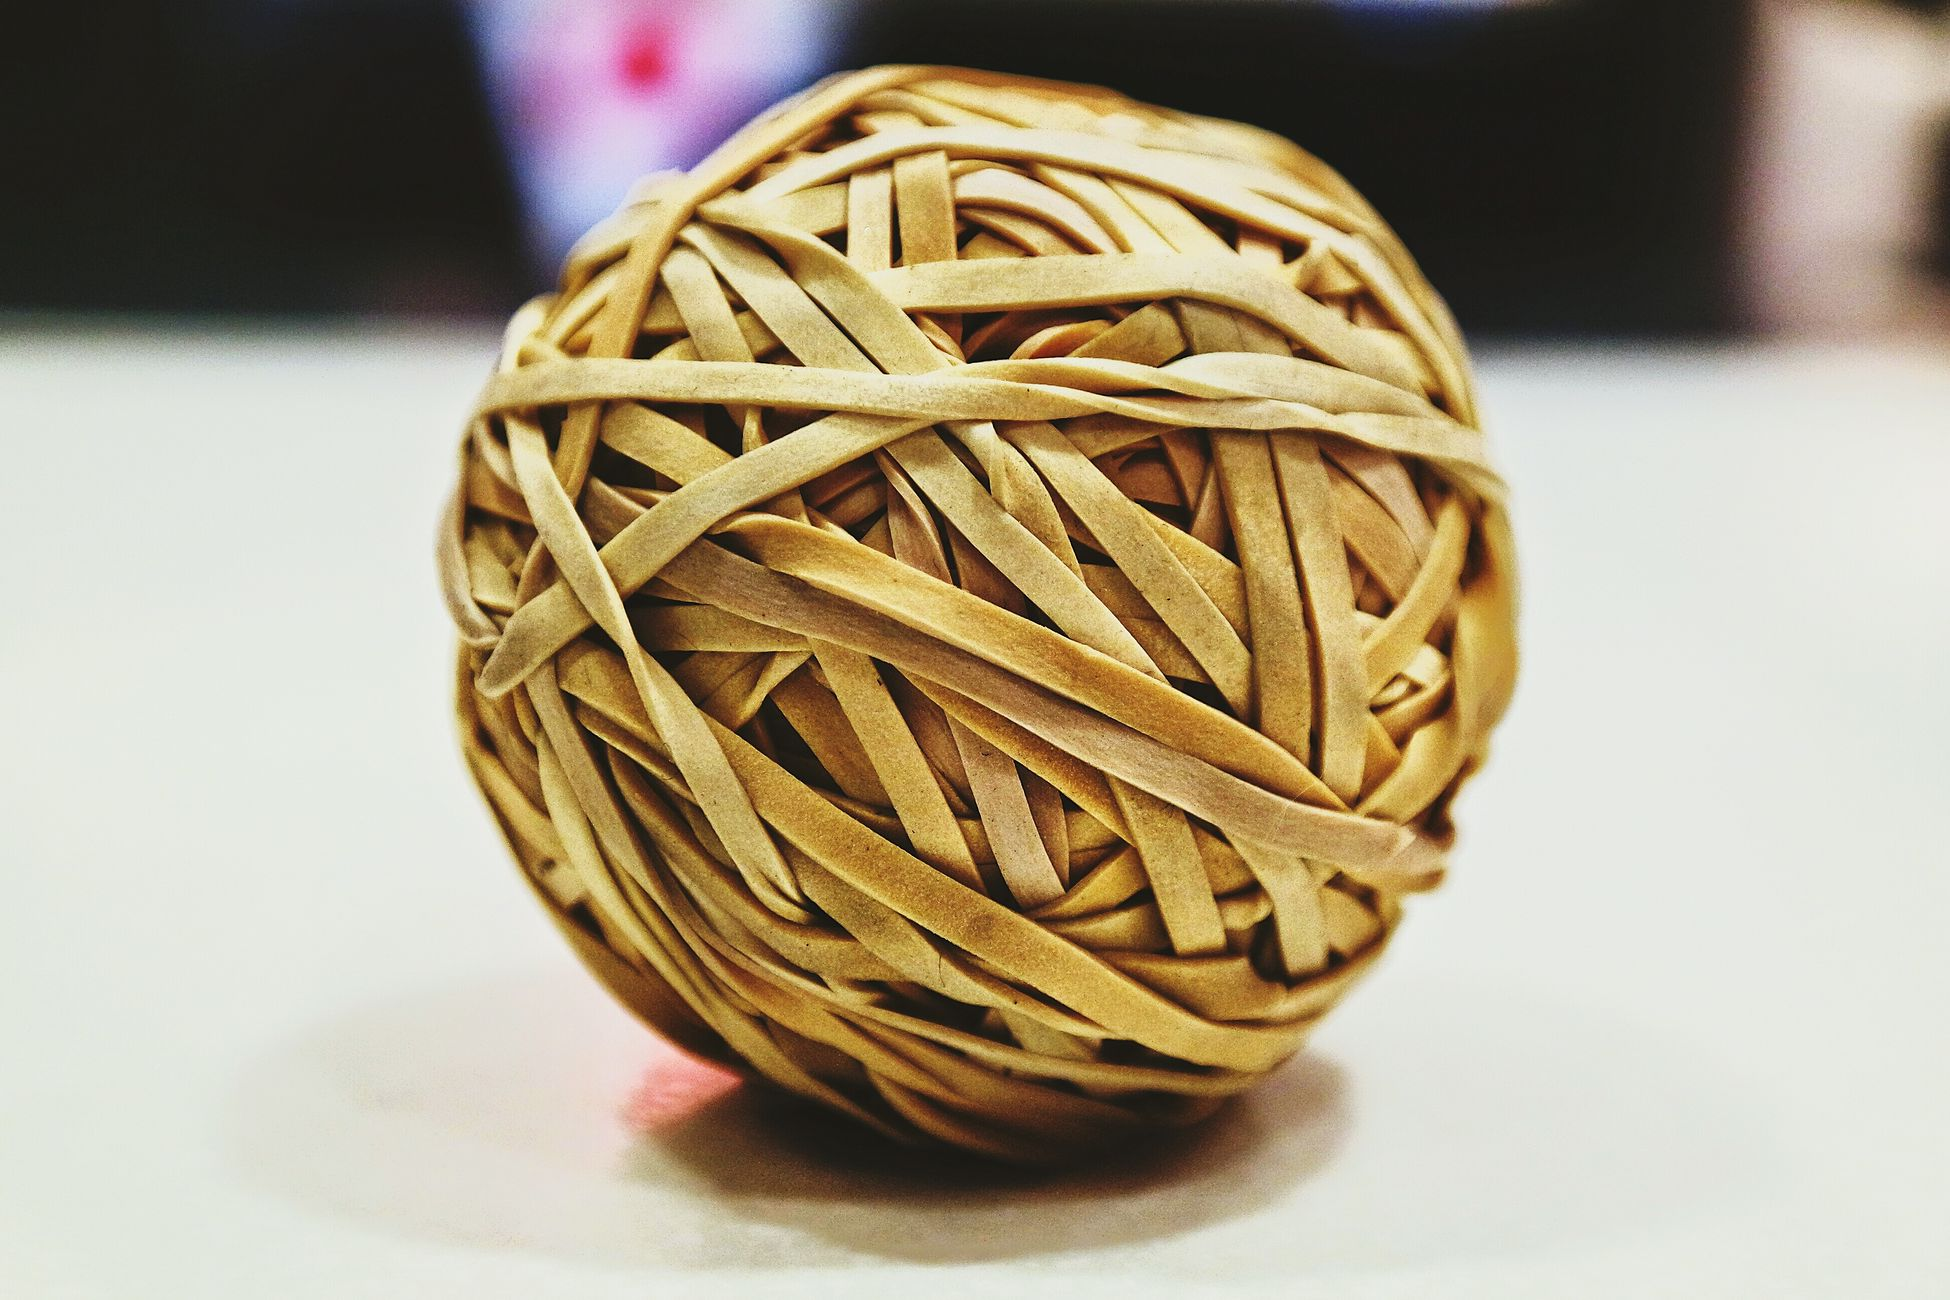 Bored At Work Rubberband Ball